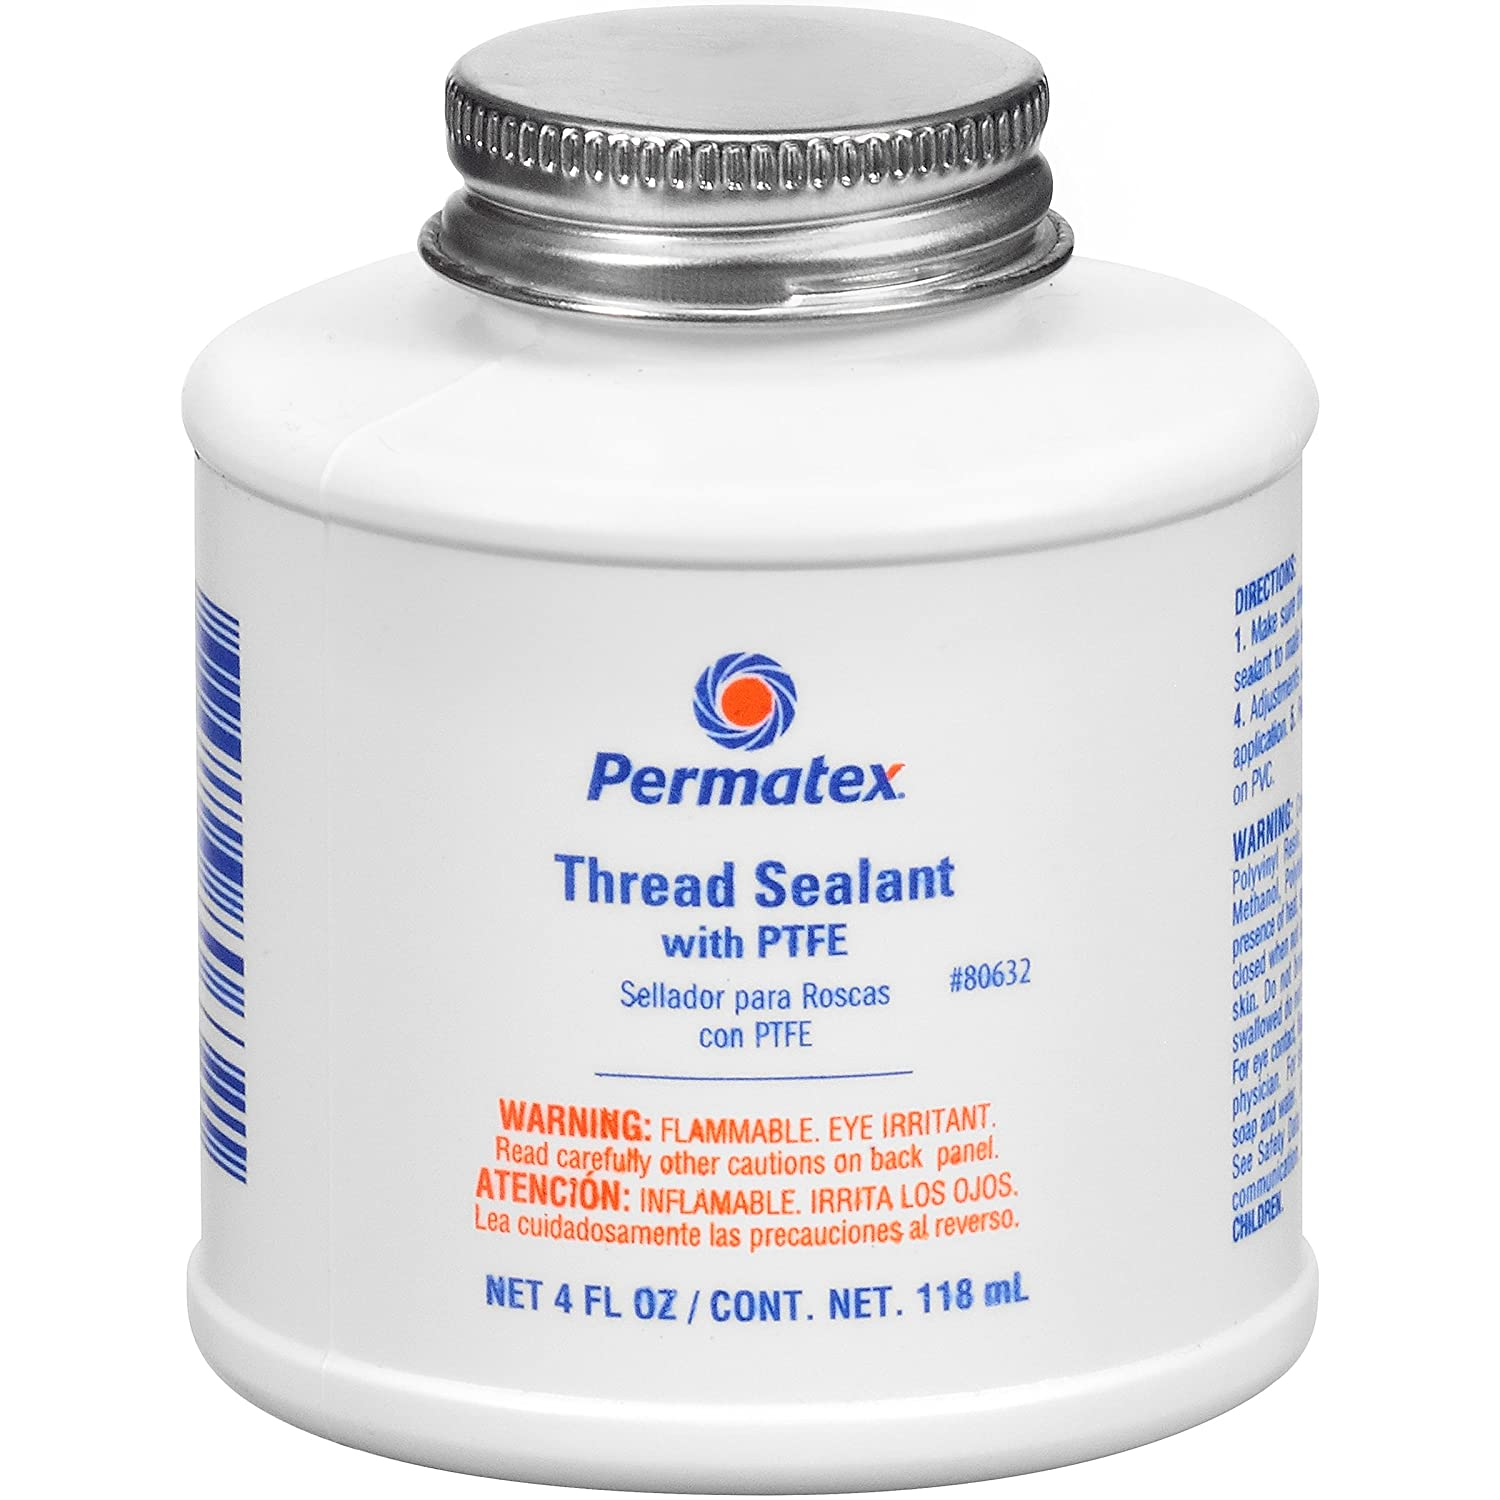 Permatex 80632 Thread Sealant with PTFE, 4 oz.